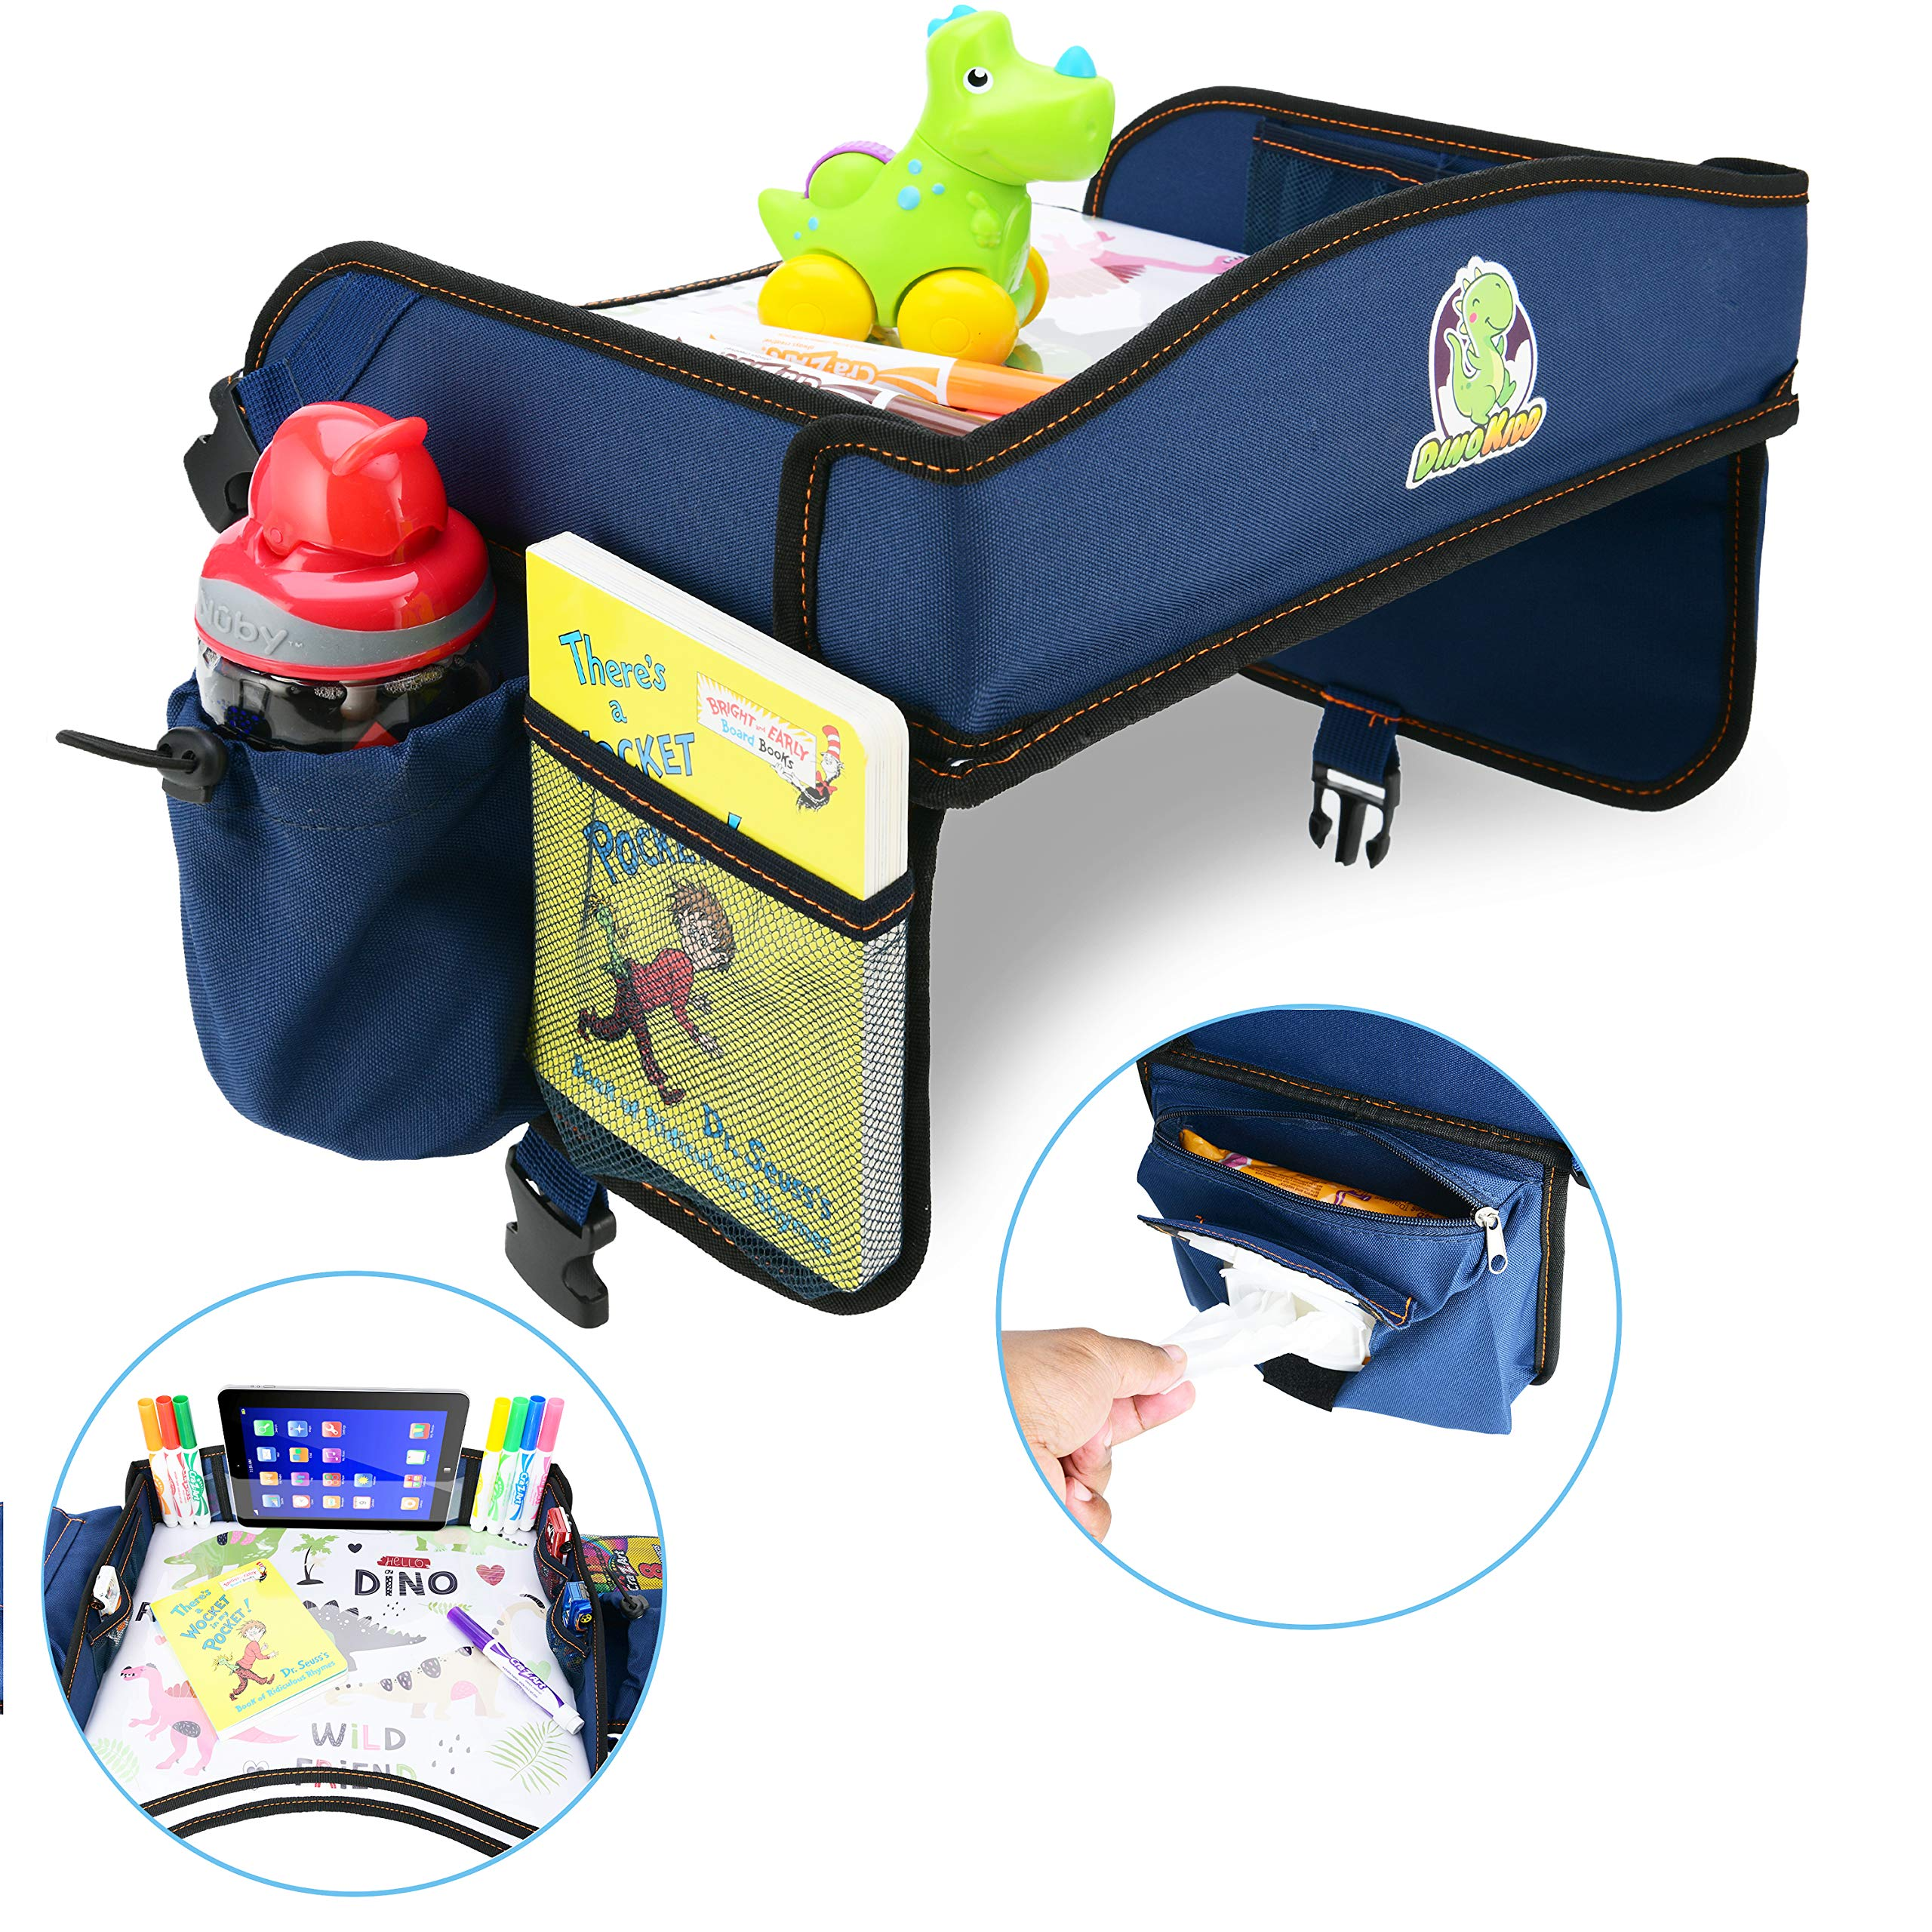 Pink Gelible Kids Car Seat Travel Tray,Detachable Toddler Lap Table Activity Tray with Cup Holder,Backseat Storage Organizer,Carry Bag and iPad /& Tablet Holder Great for Activity Snacks Play